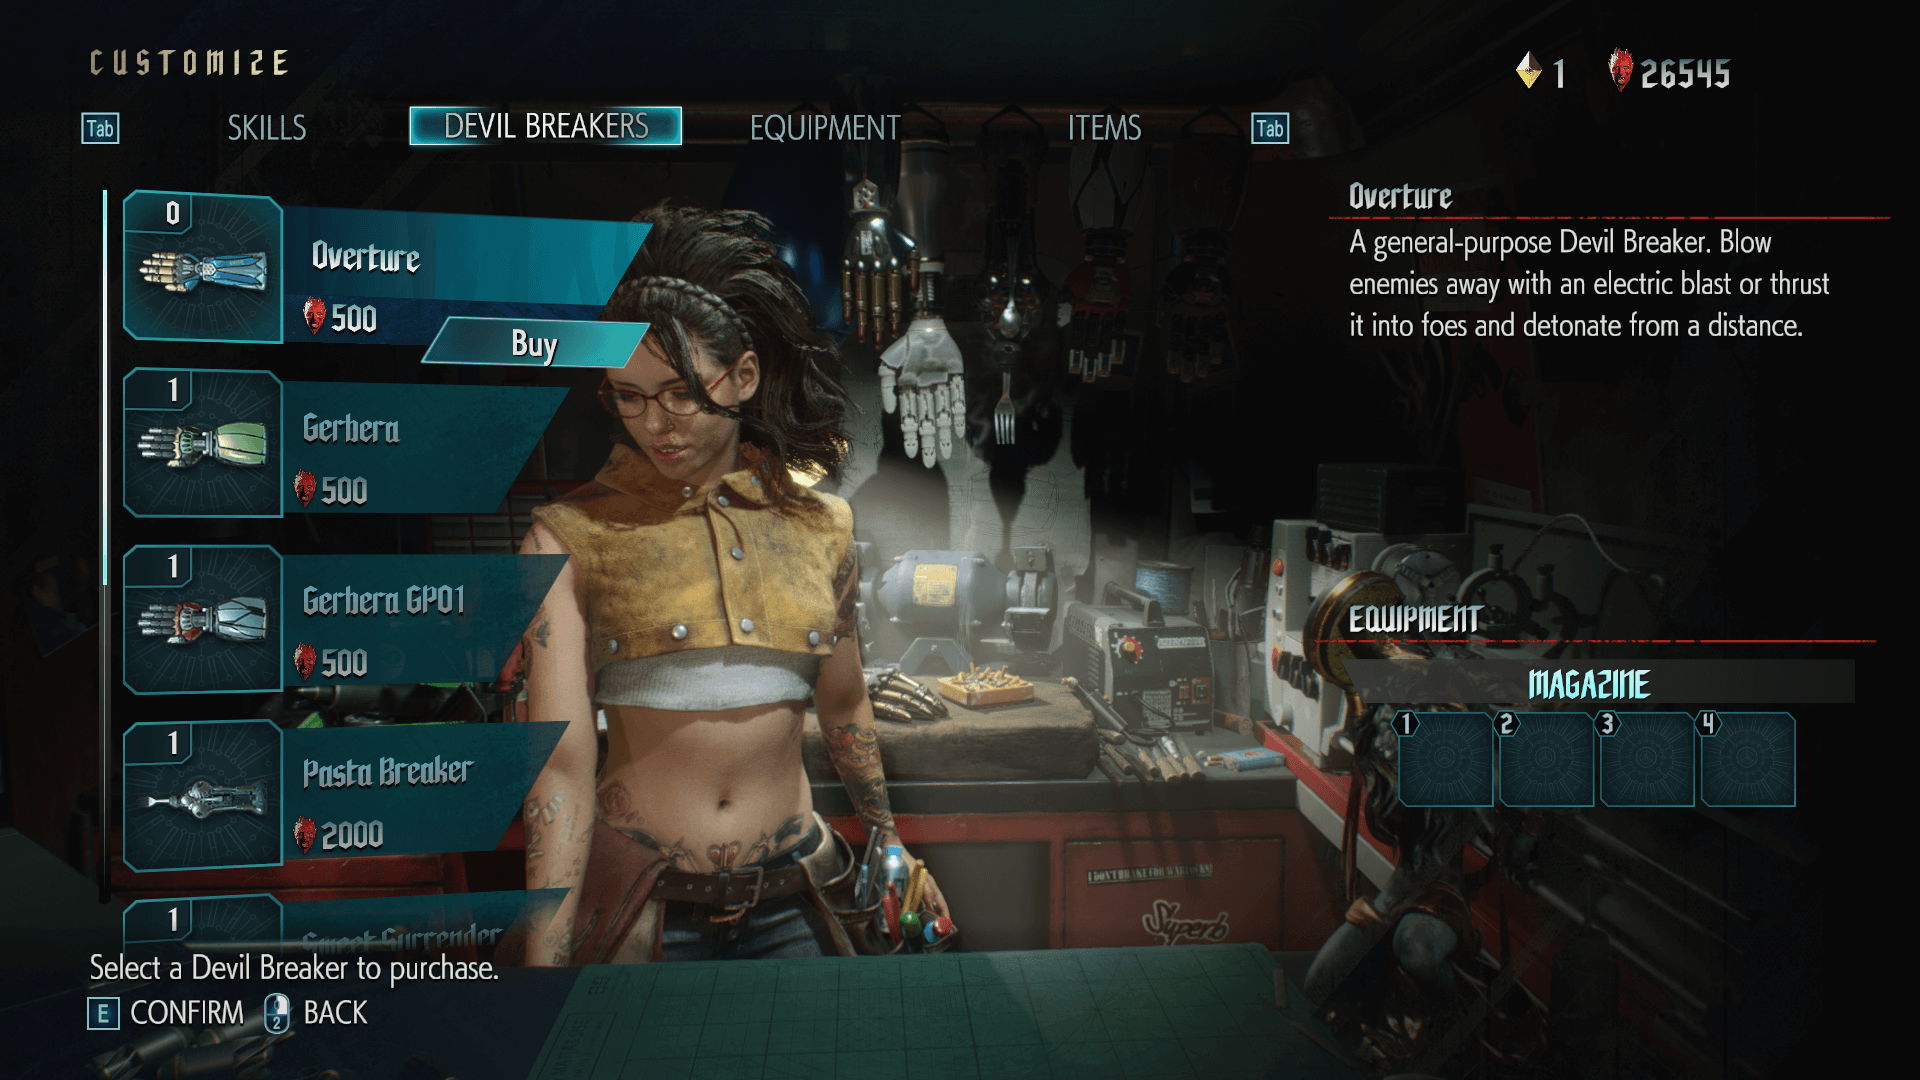 Devil breakers screenshot of Devil May Cry 5 video game interface.